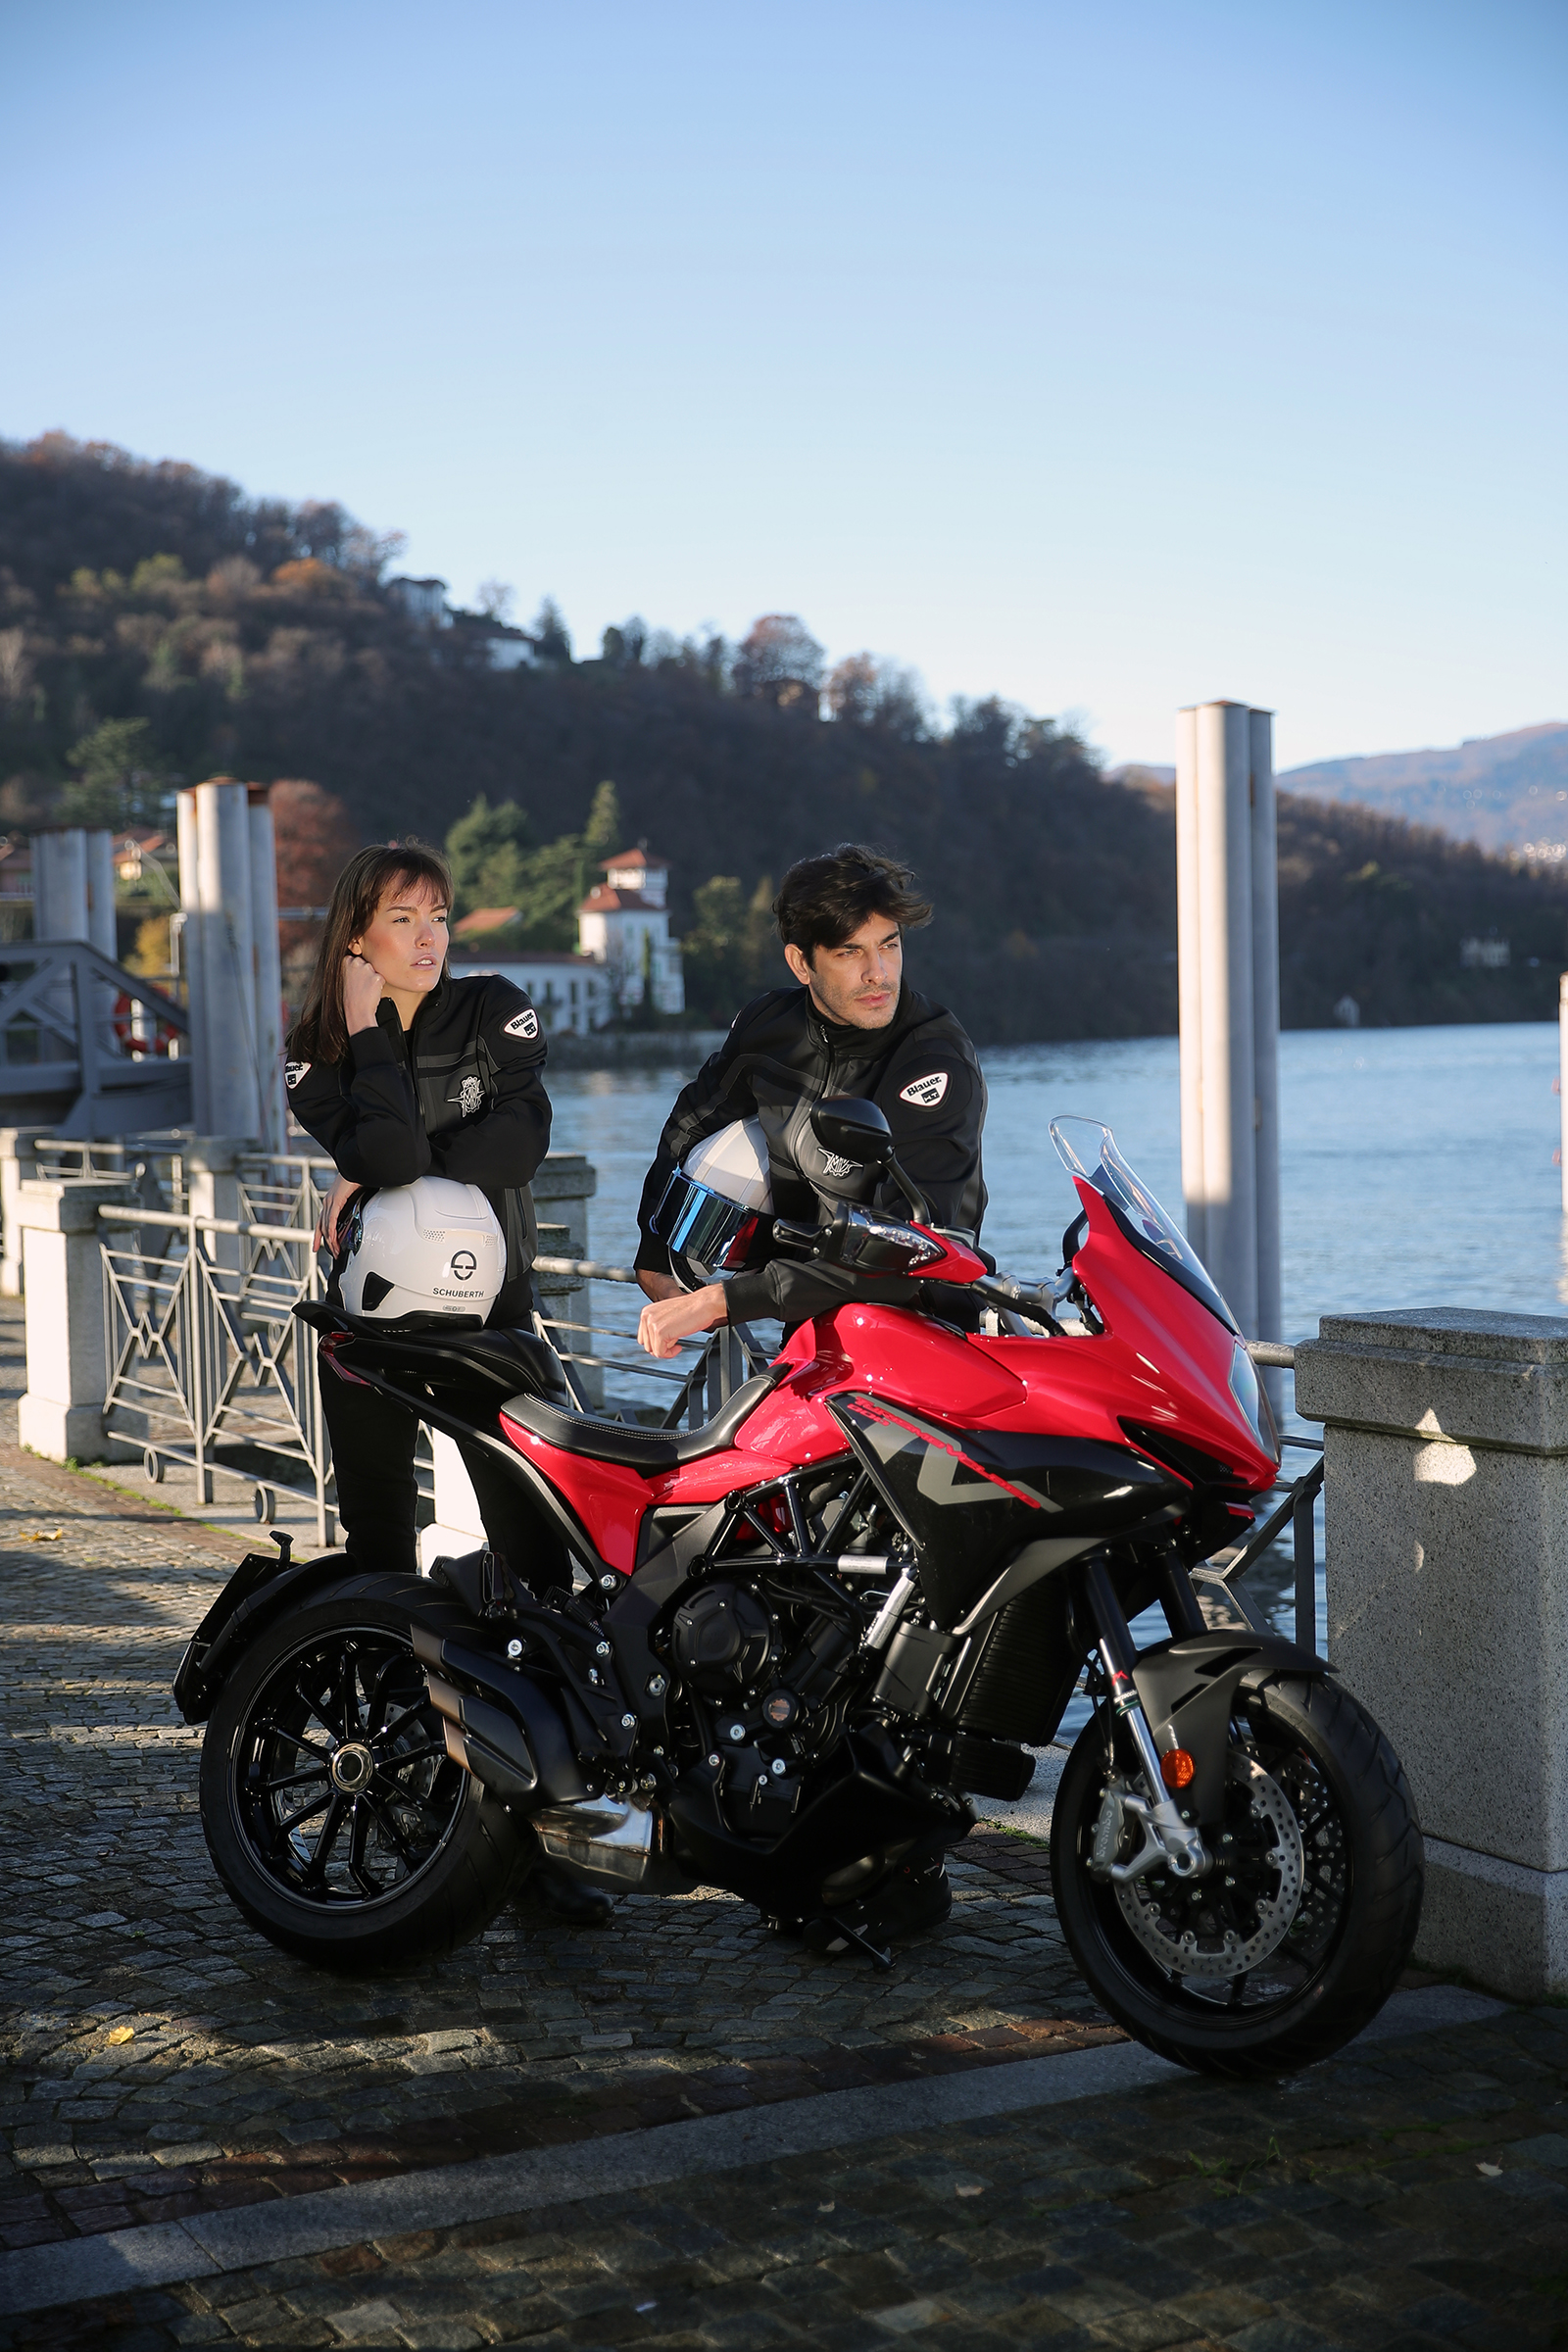 turismo veloce rosso parked near the waters edge with a male and female rider holding their helmets